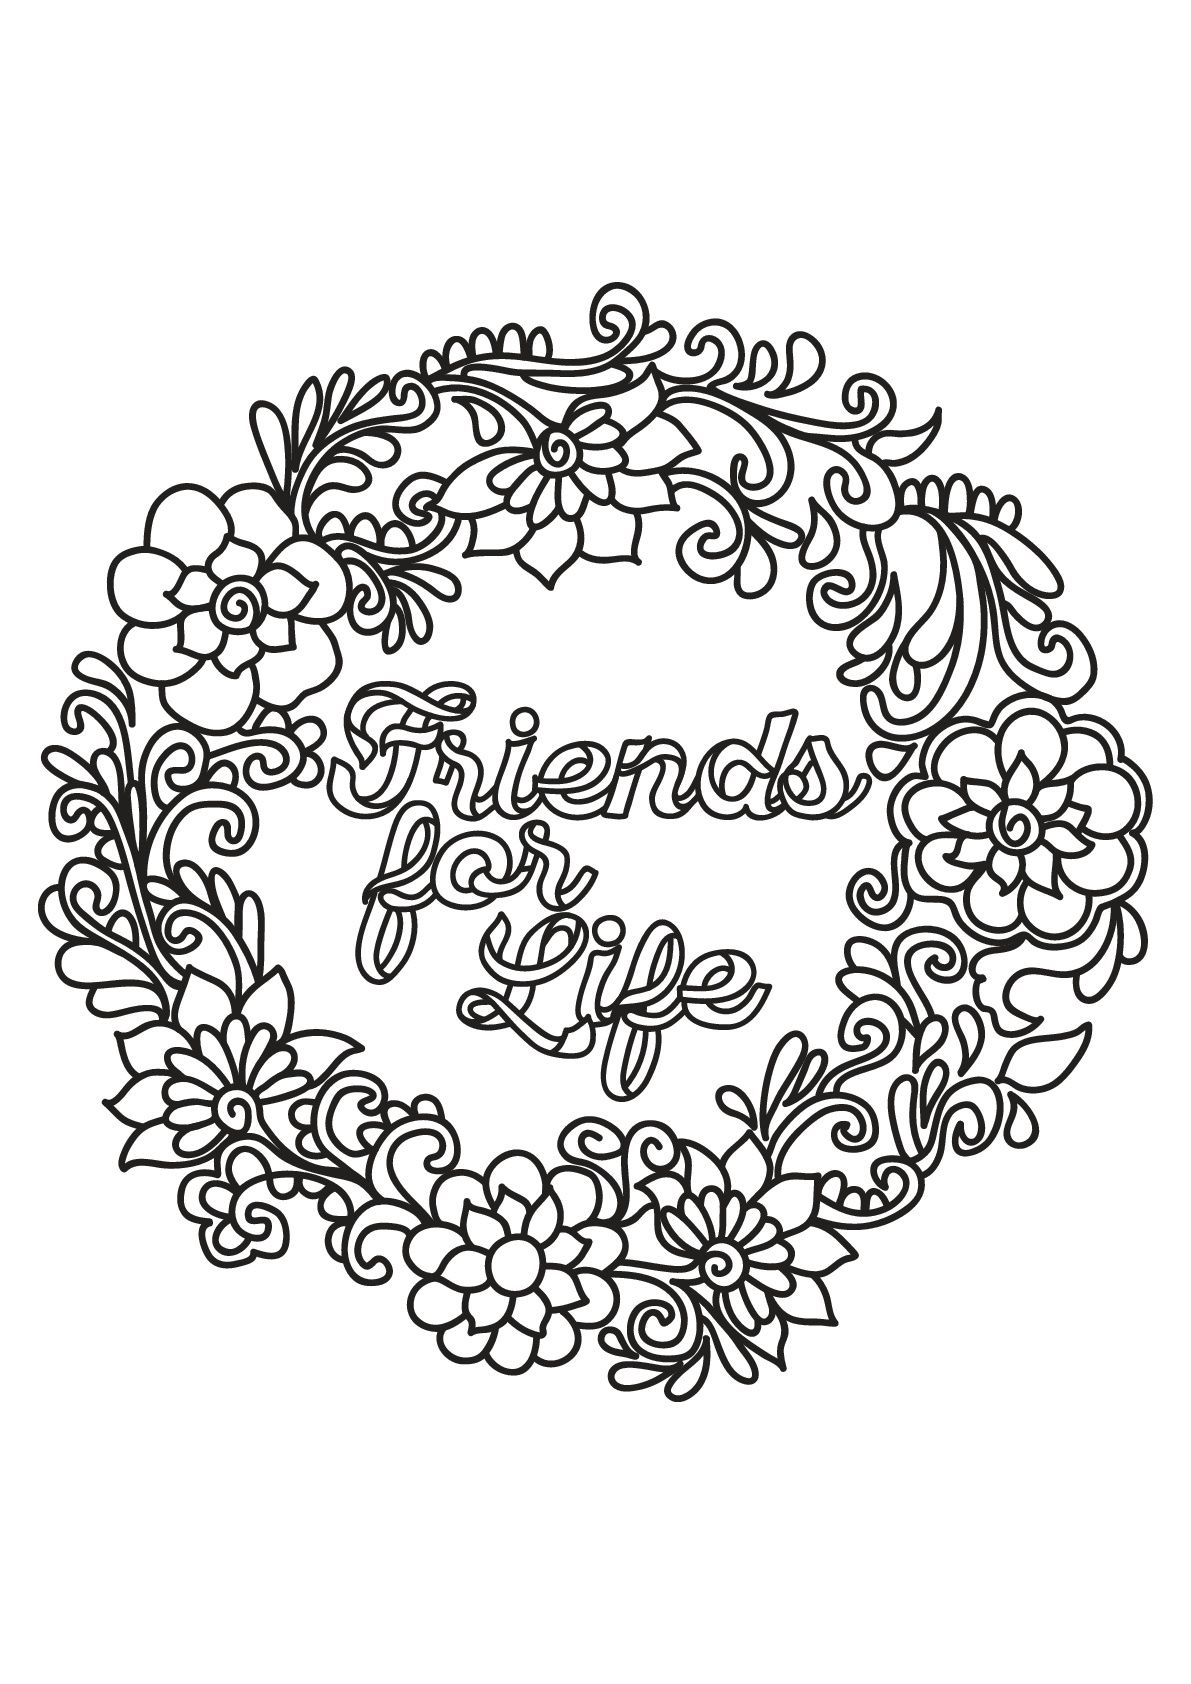 Friends For Life From The Gallery Quotes Quote Coloring Pages Unicorn Coloring Pages Love Coloring Pages